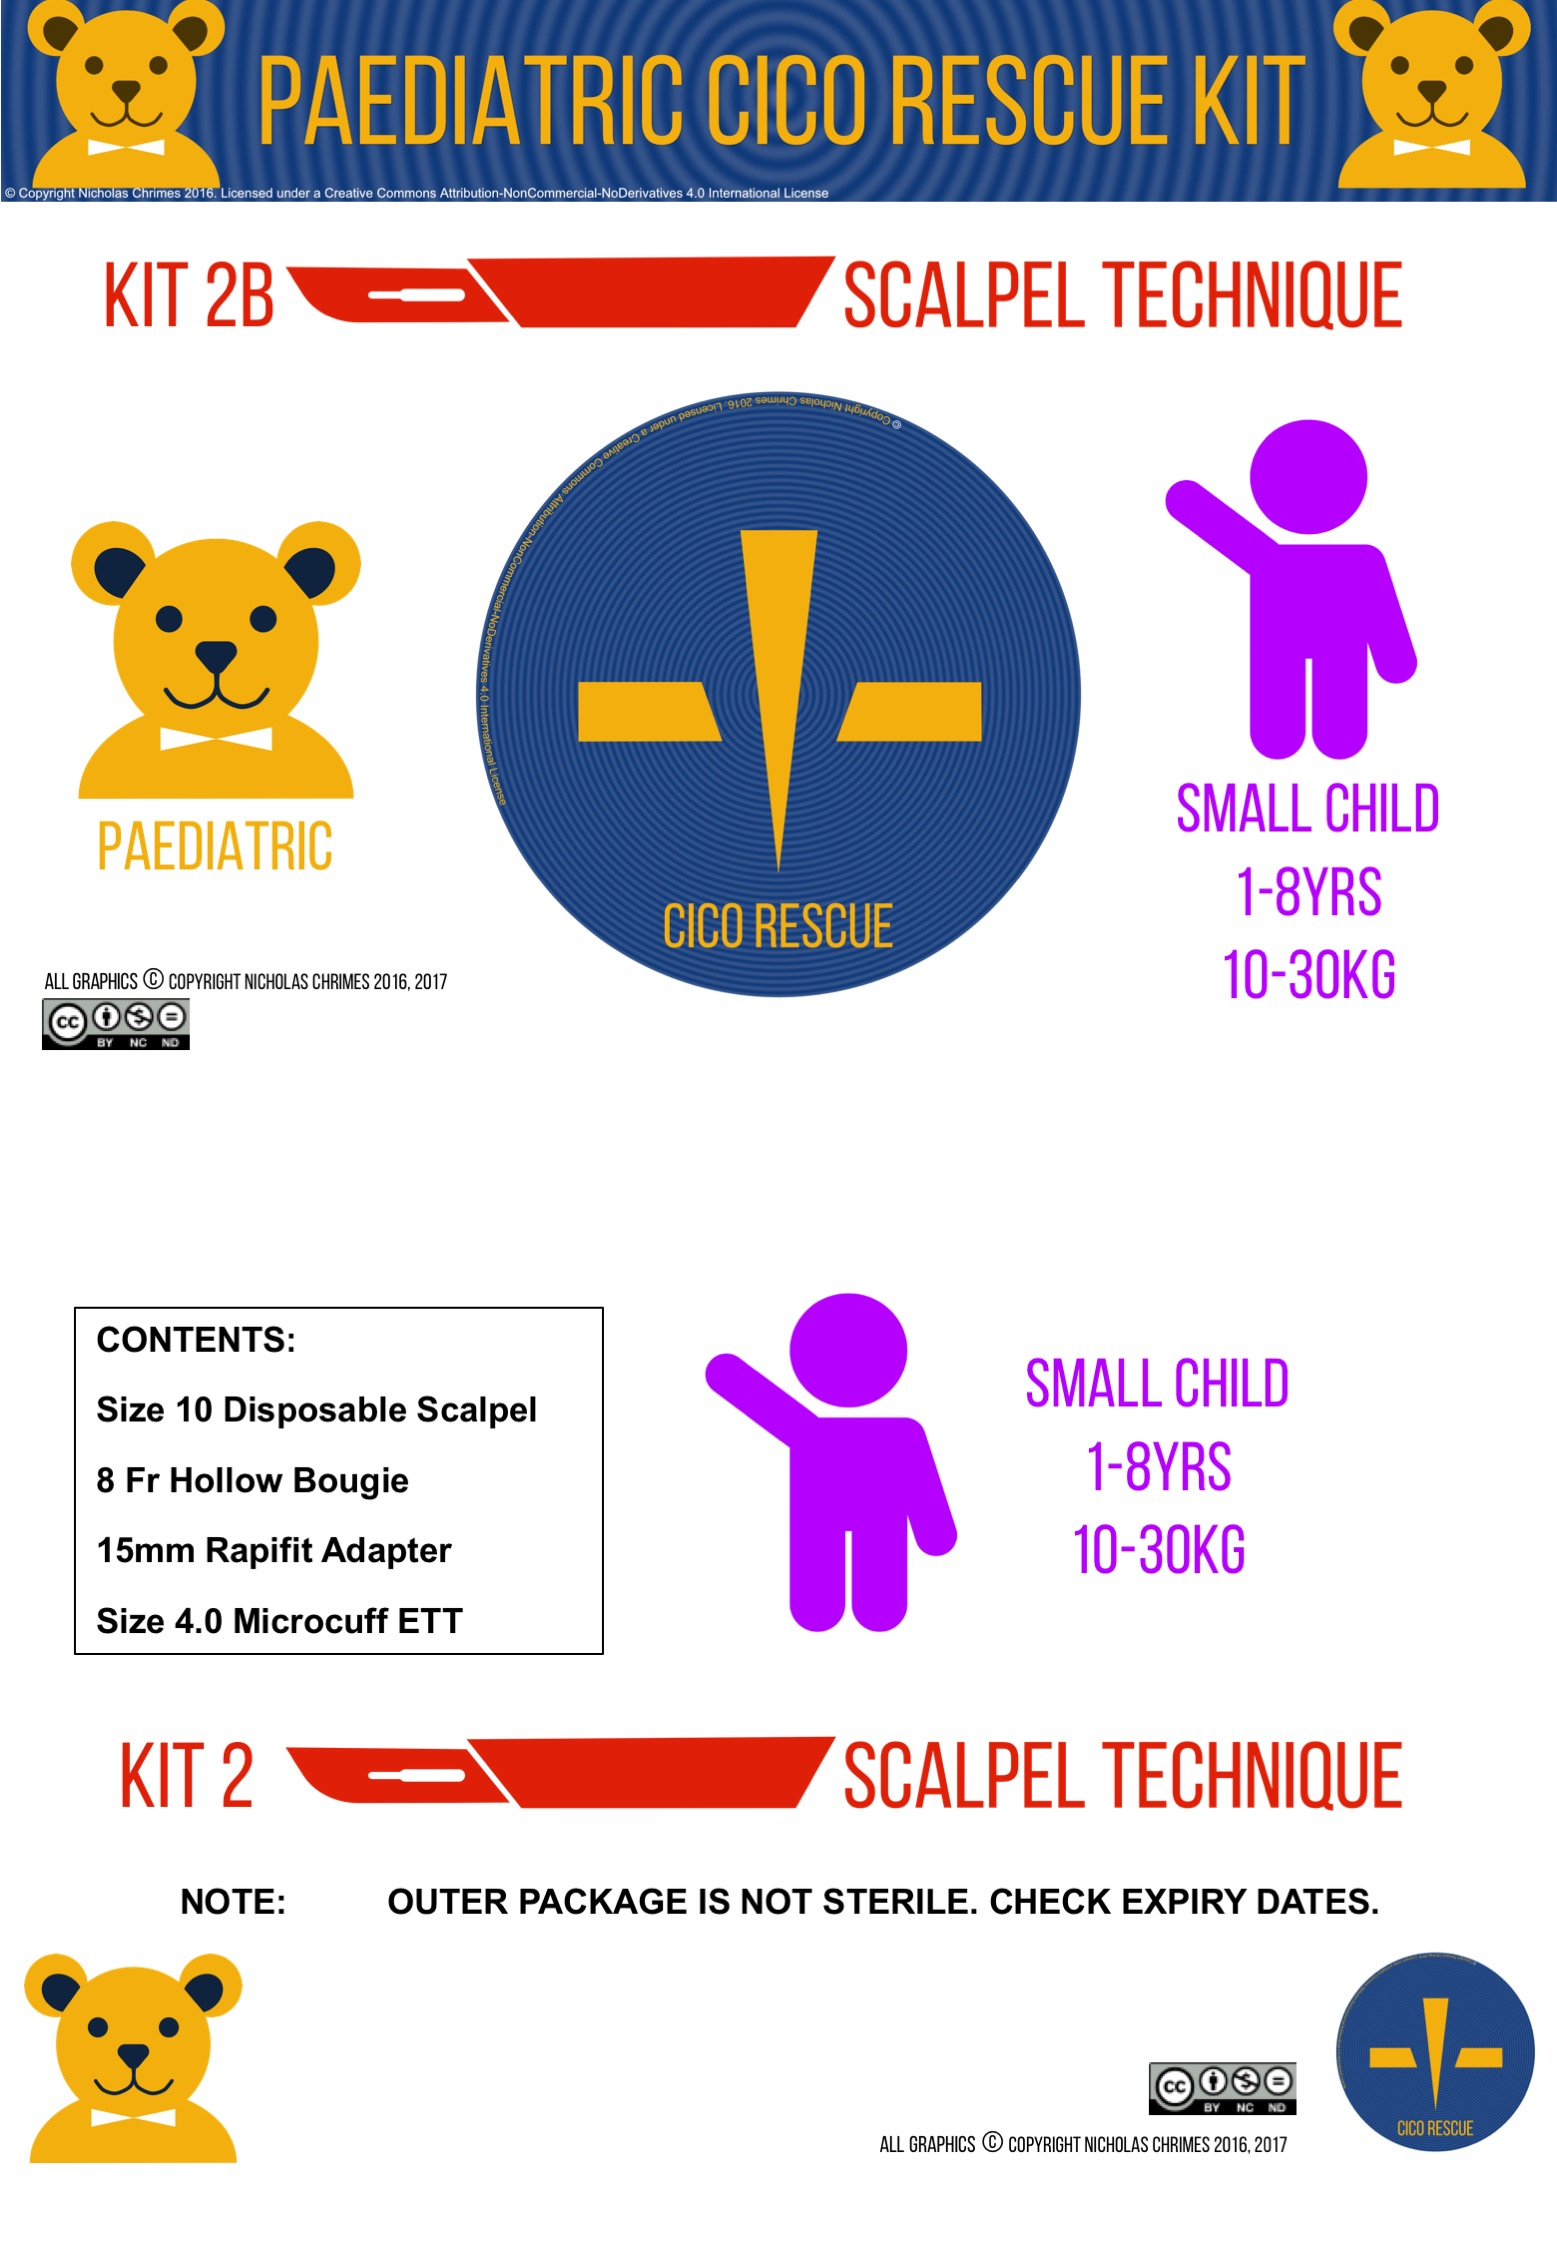 Small Child Scalpel CICO Rescue Kit - Complete Labels & Contents